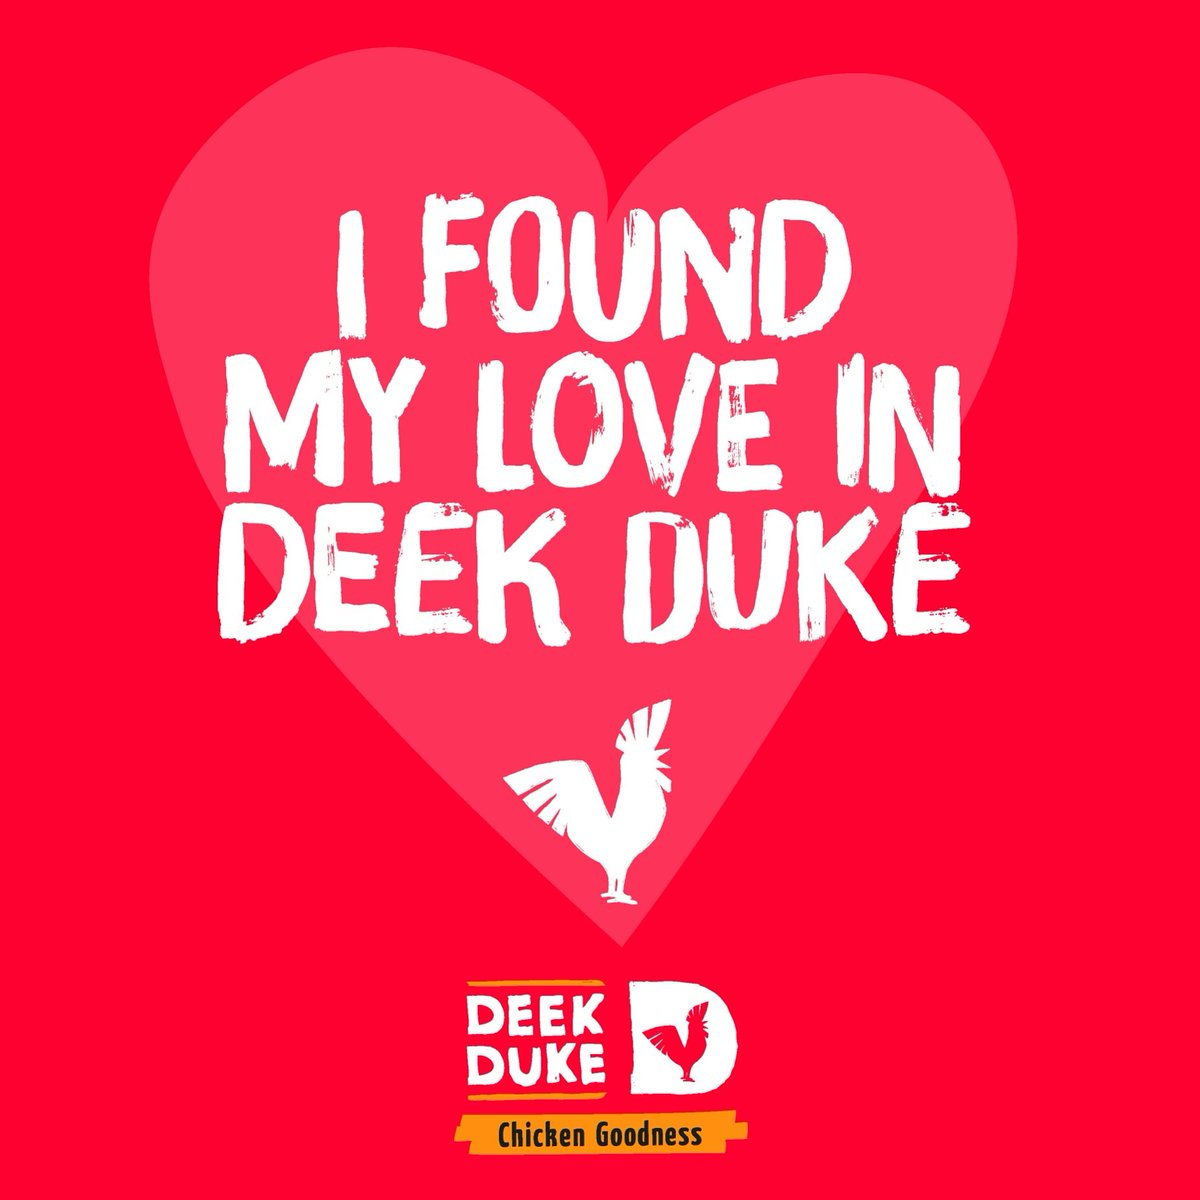 Tag your Valentine Dukeaholics to win some #ChickenGoodness! https://t.co/nIwwdMTutT